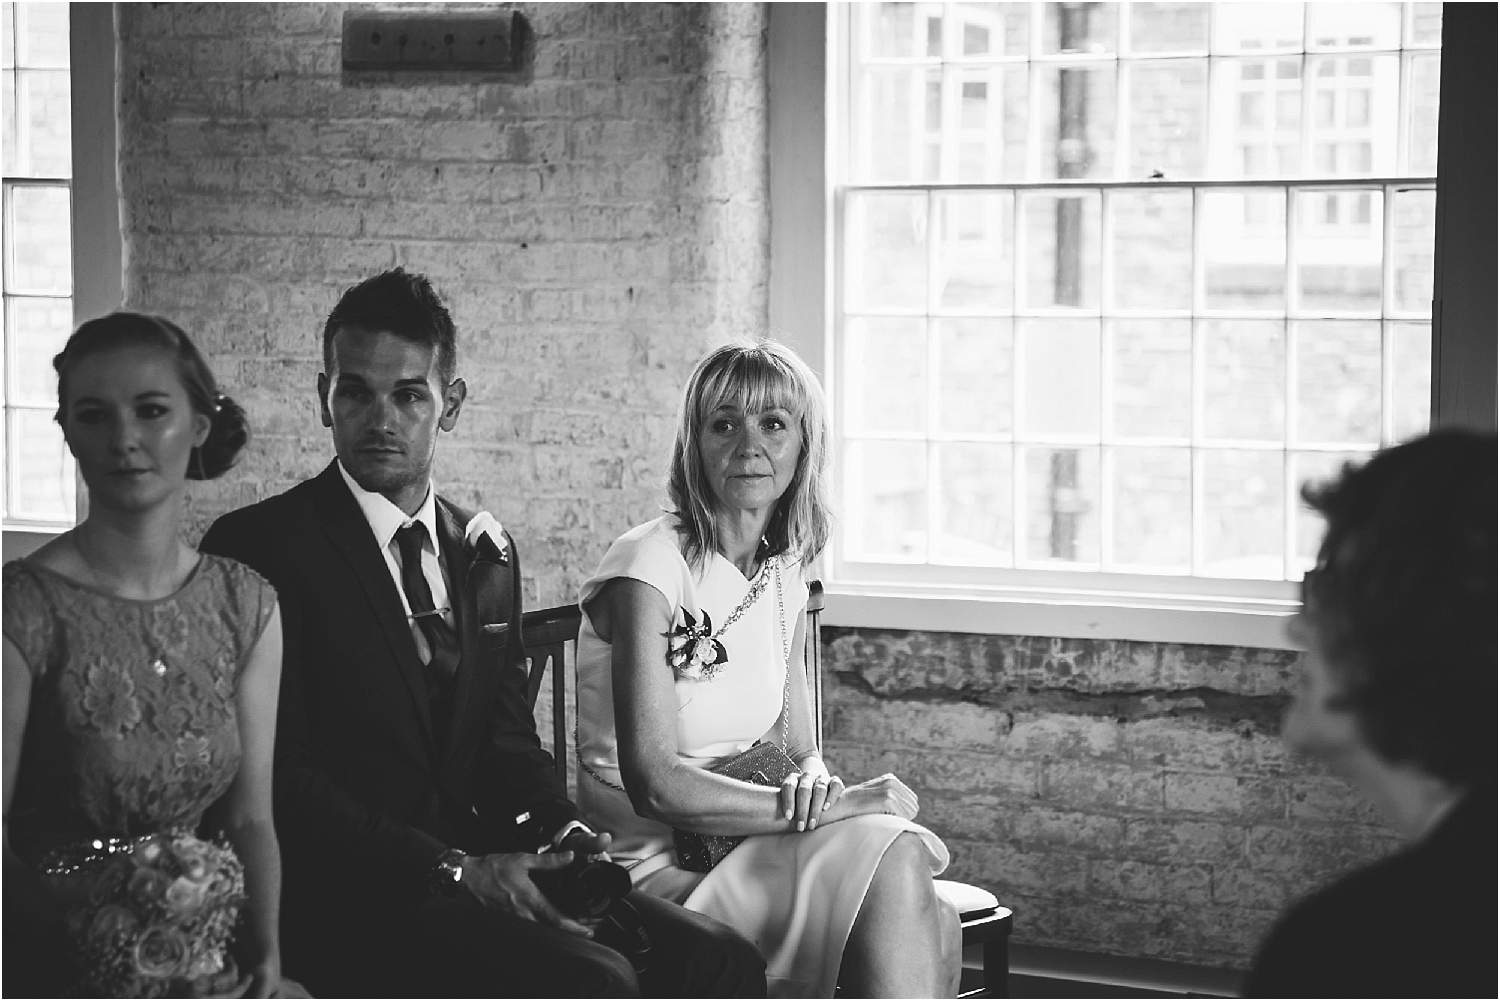 Wedding-west-mill-venue-professional-photographer-natural-documentary-nottingham-derby-108_BLOG.jpg